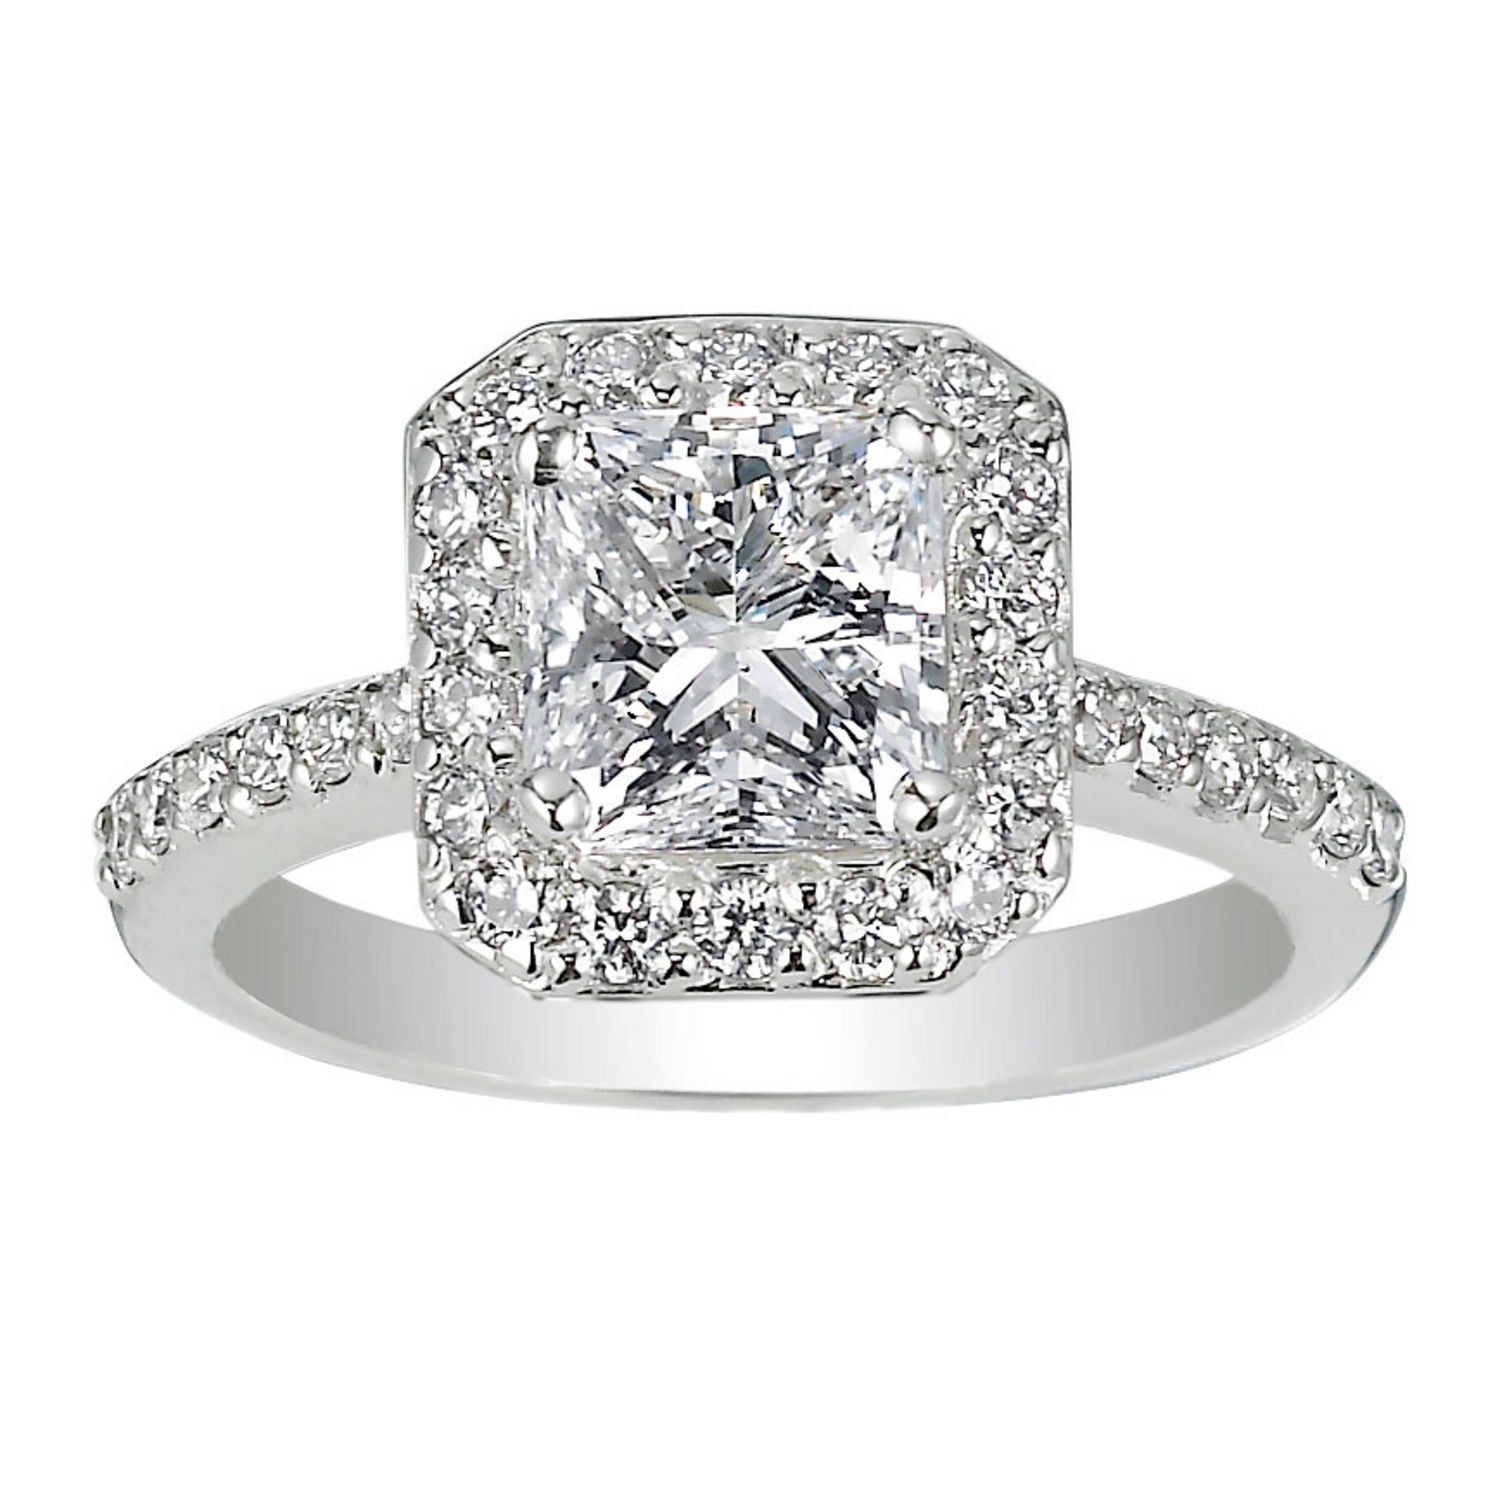 62 Diamond Engagement Rings Under $5,000 | Glamour Throughout Most Recent Diamond Double Frame Vintage Style Rings (View 3 of 15)